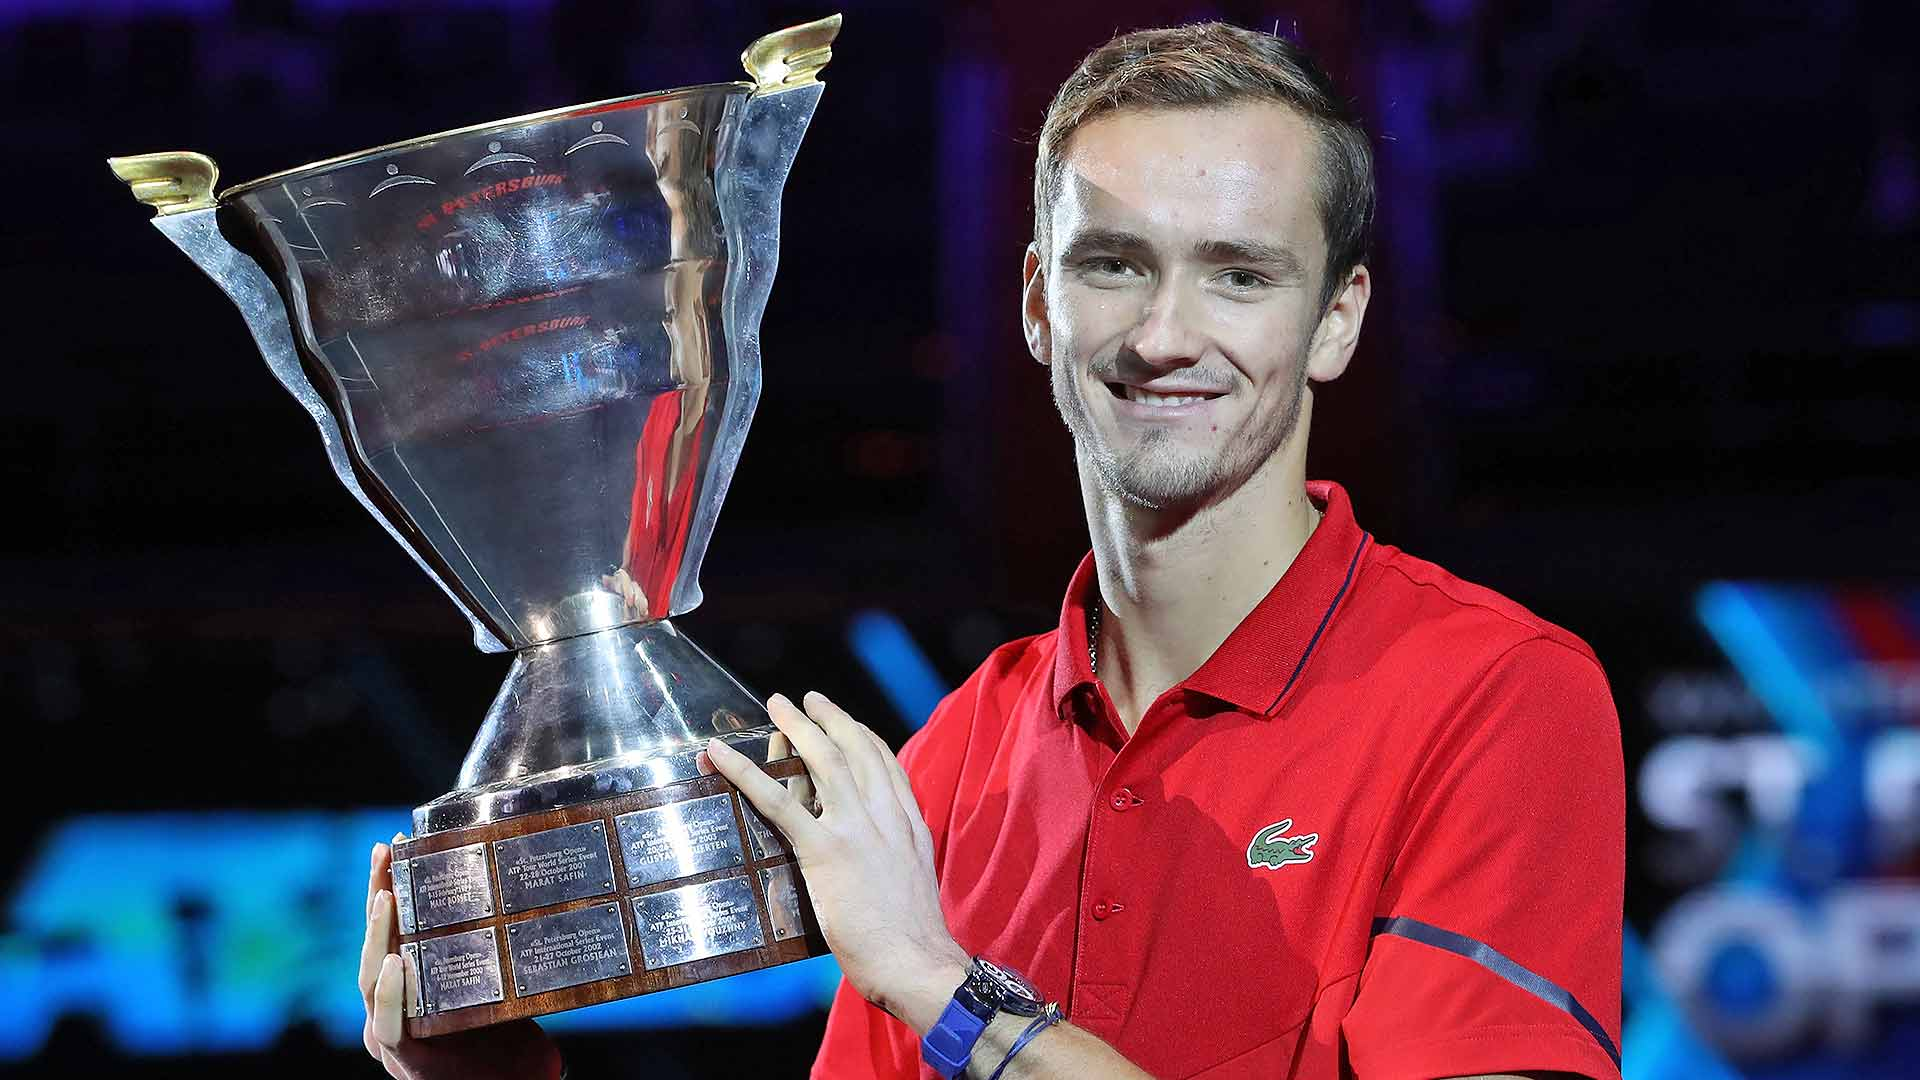 ATP ST PETERSBOURG 2019 - Page 3 Medvedev-st-petersburg-2019-sunday-final-trophy-shot